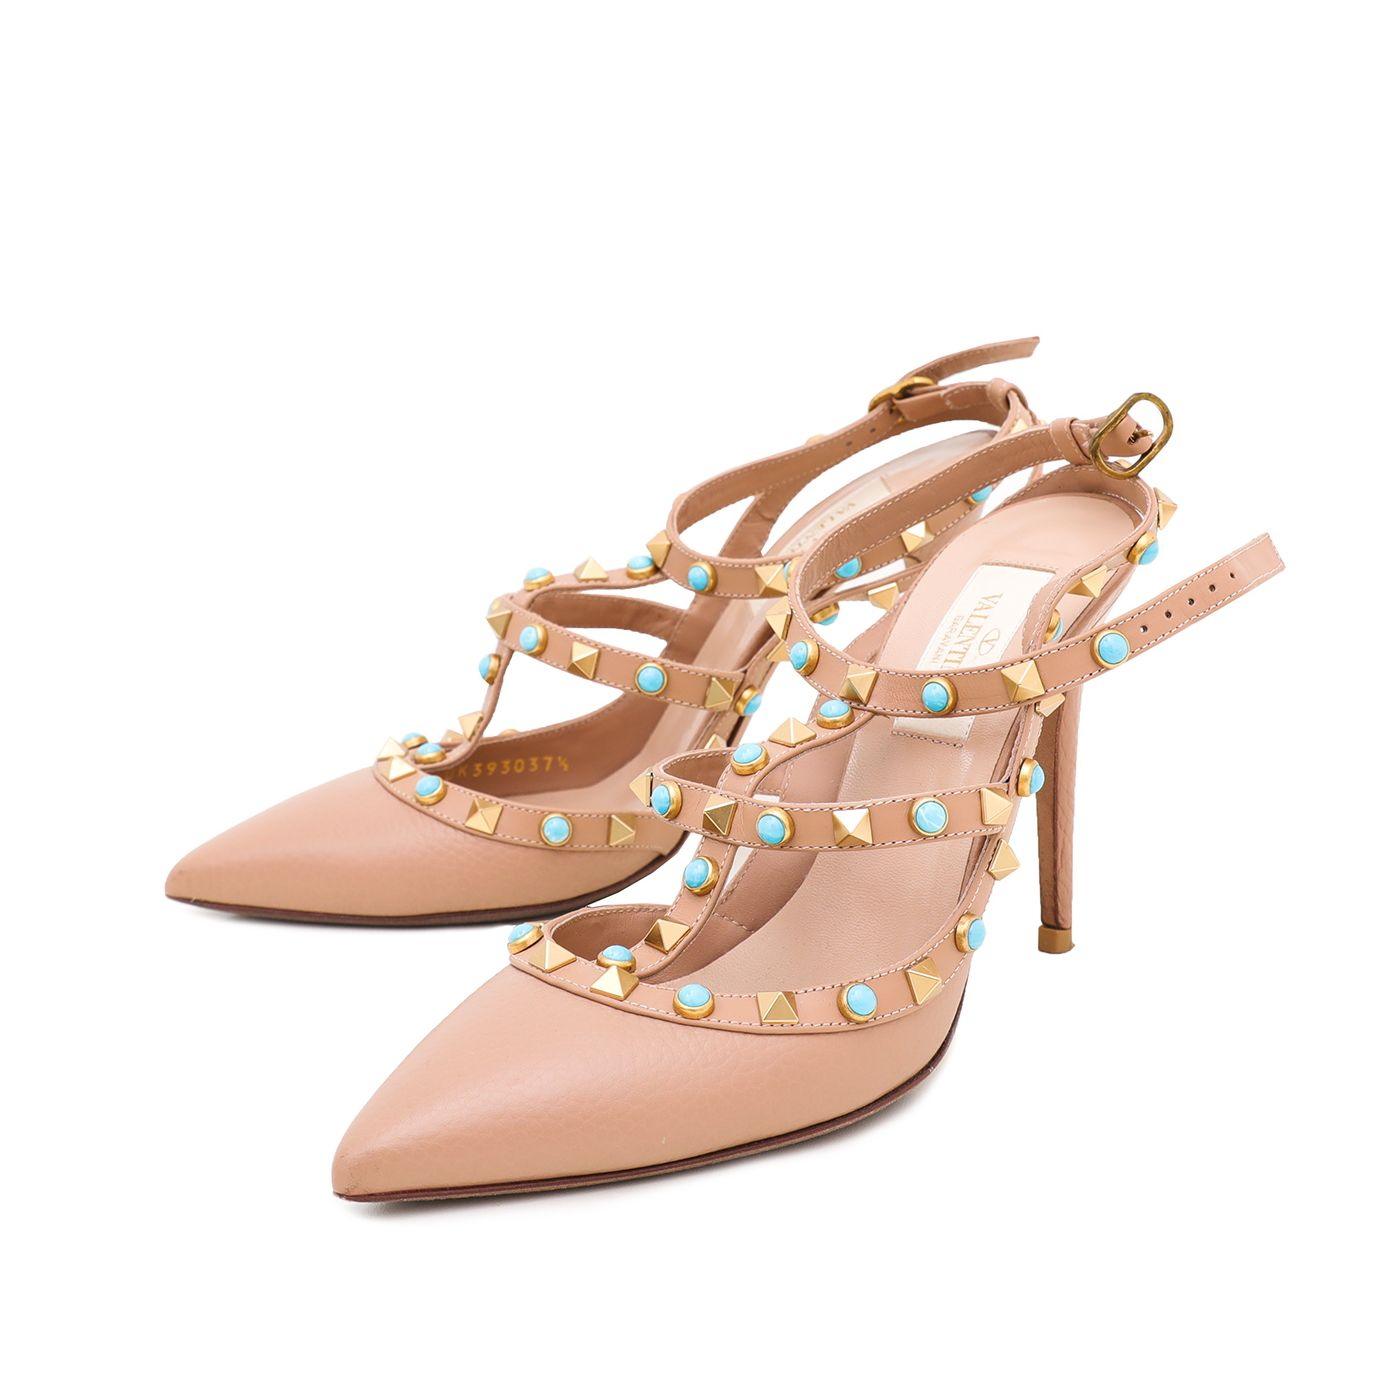 Valentino Nude Rockstud Rolling Ankle Strap Sandals 37.5